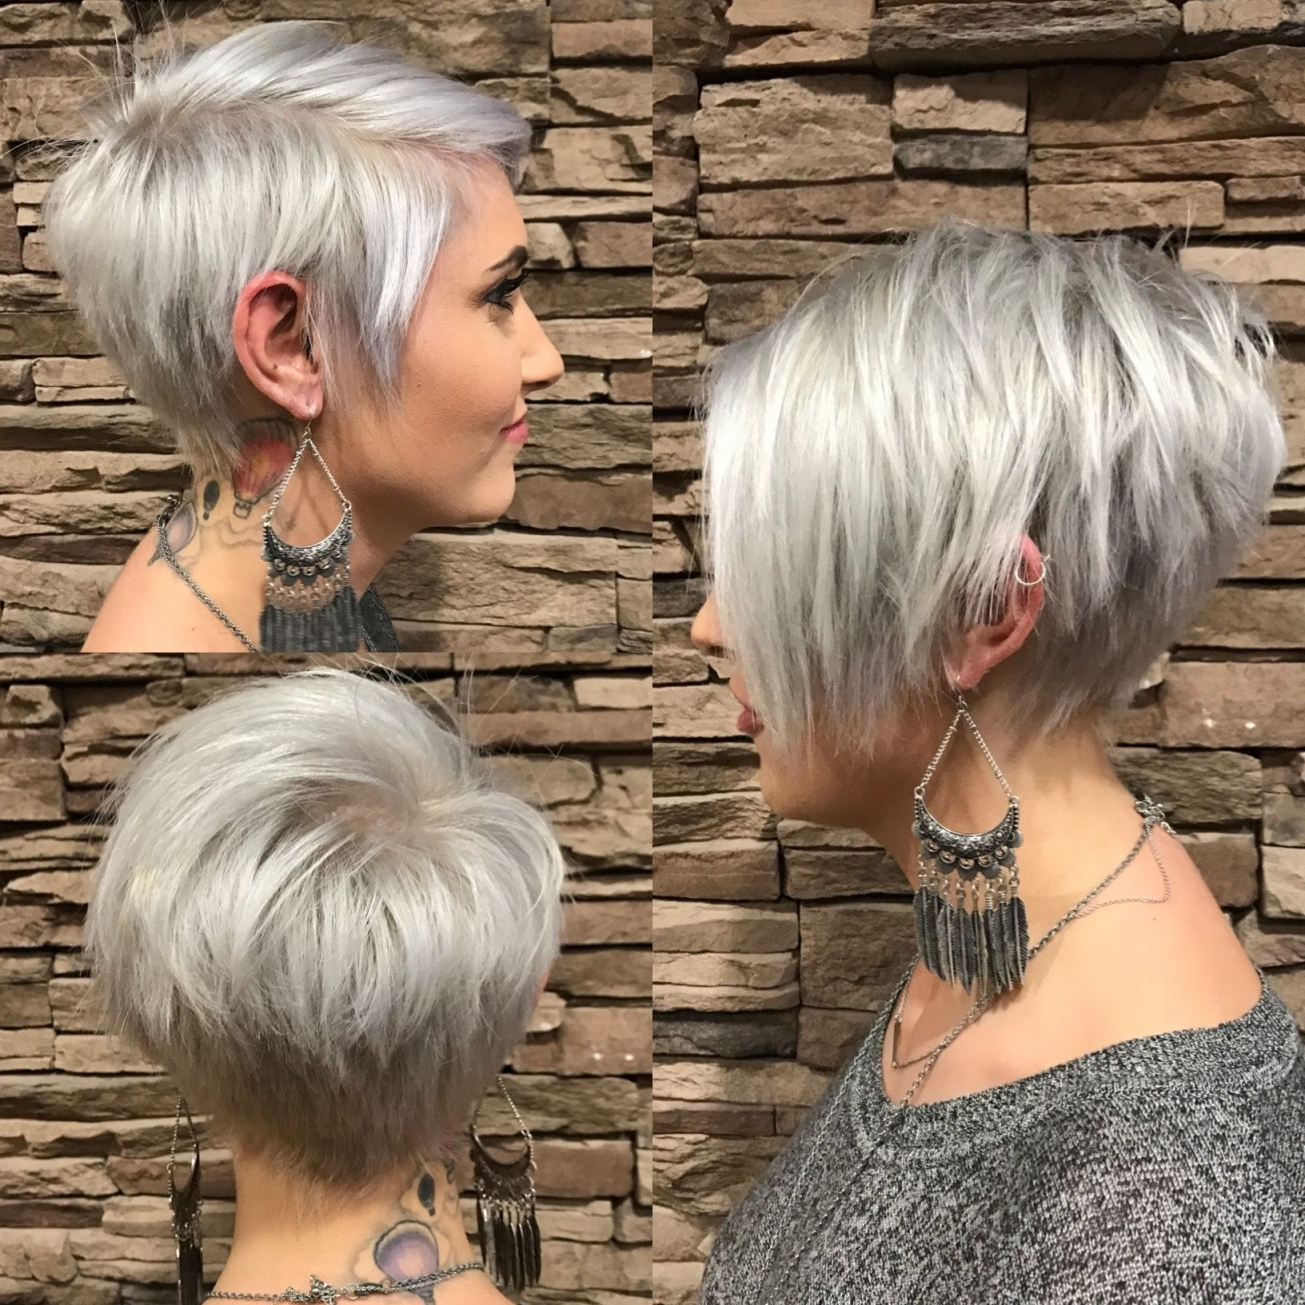 Asymmetrical Bob Short Hair Best Of Long Pixie With Bangs Silver Regarding Current Stacked Pixie Bob Hairstyles With Long Bangs (View 4 of 20)